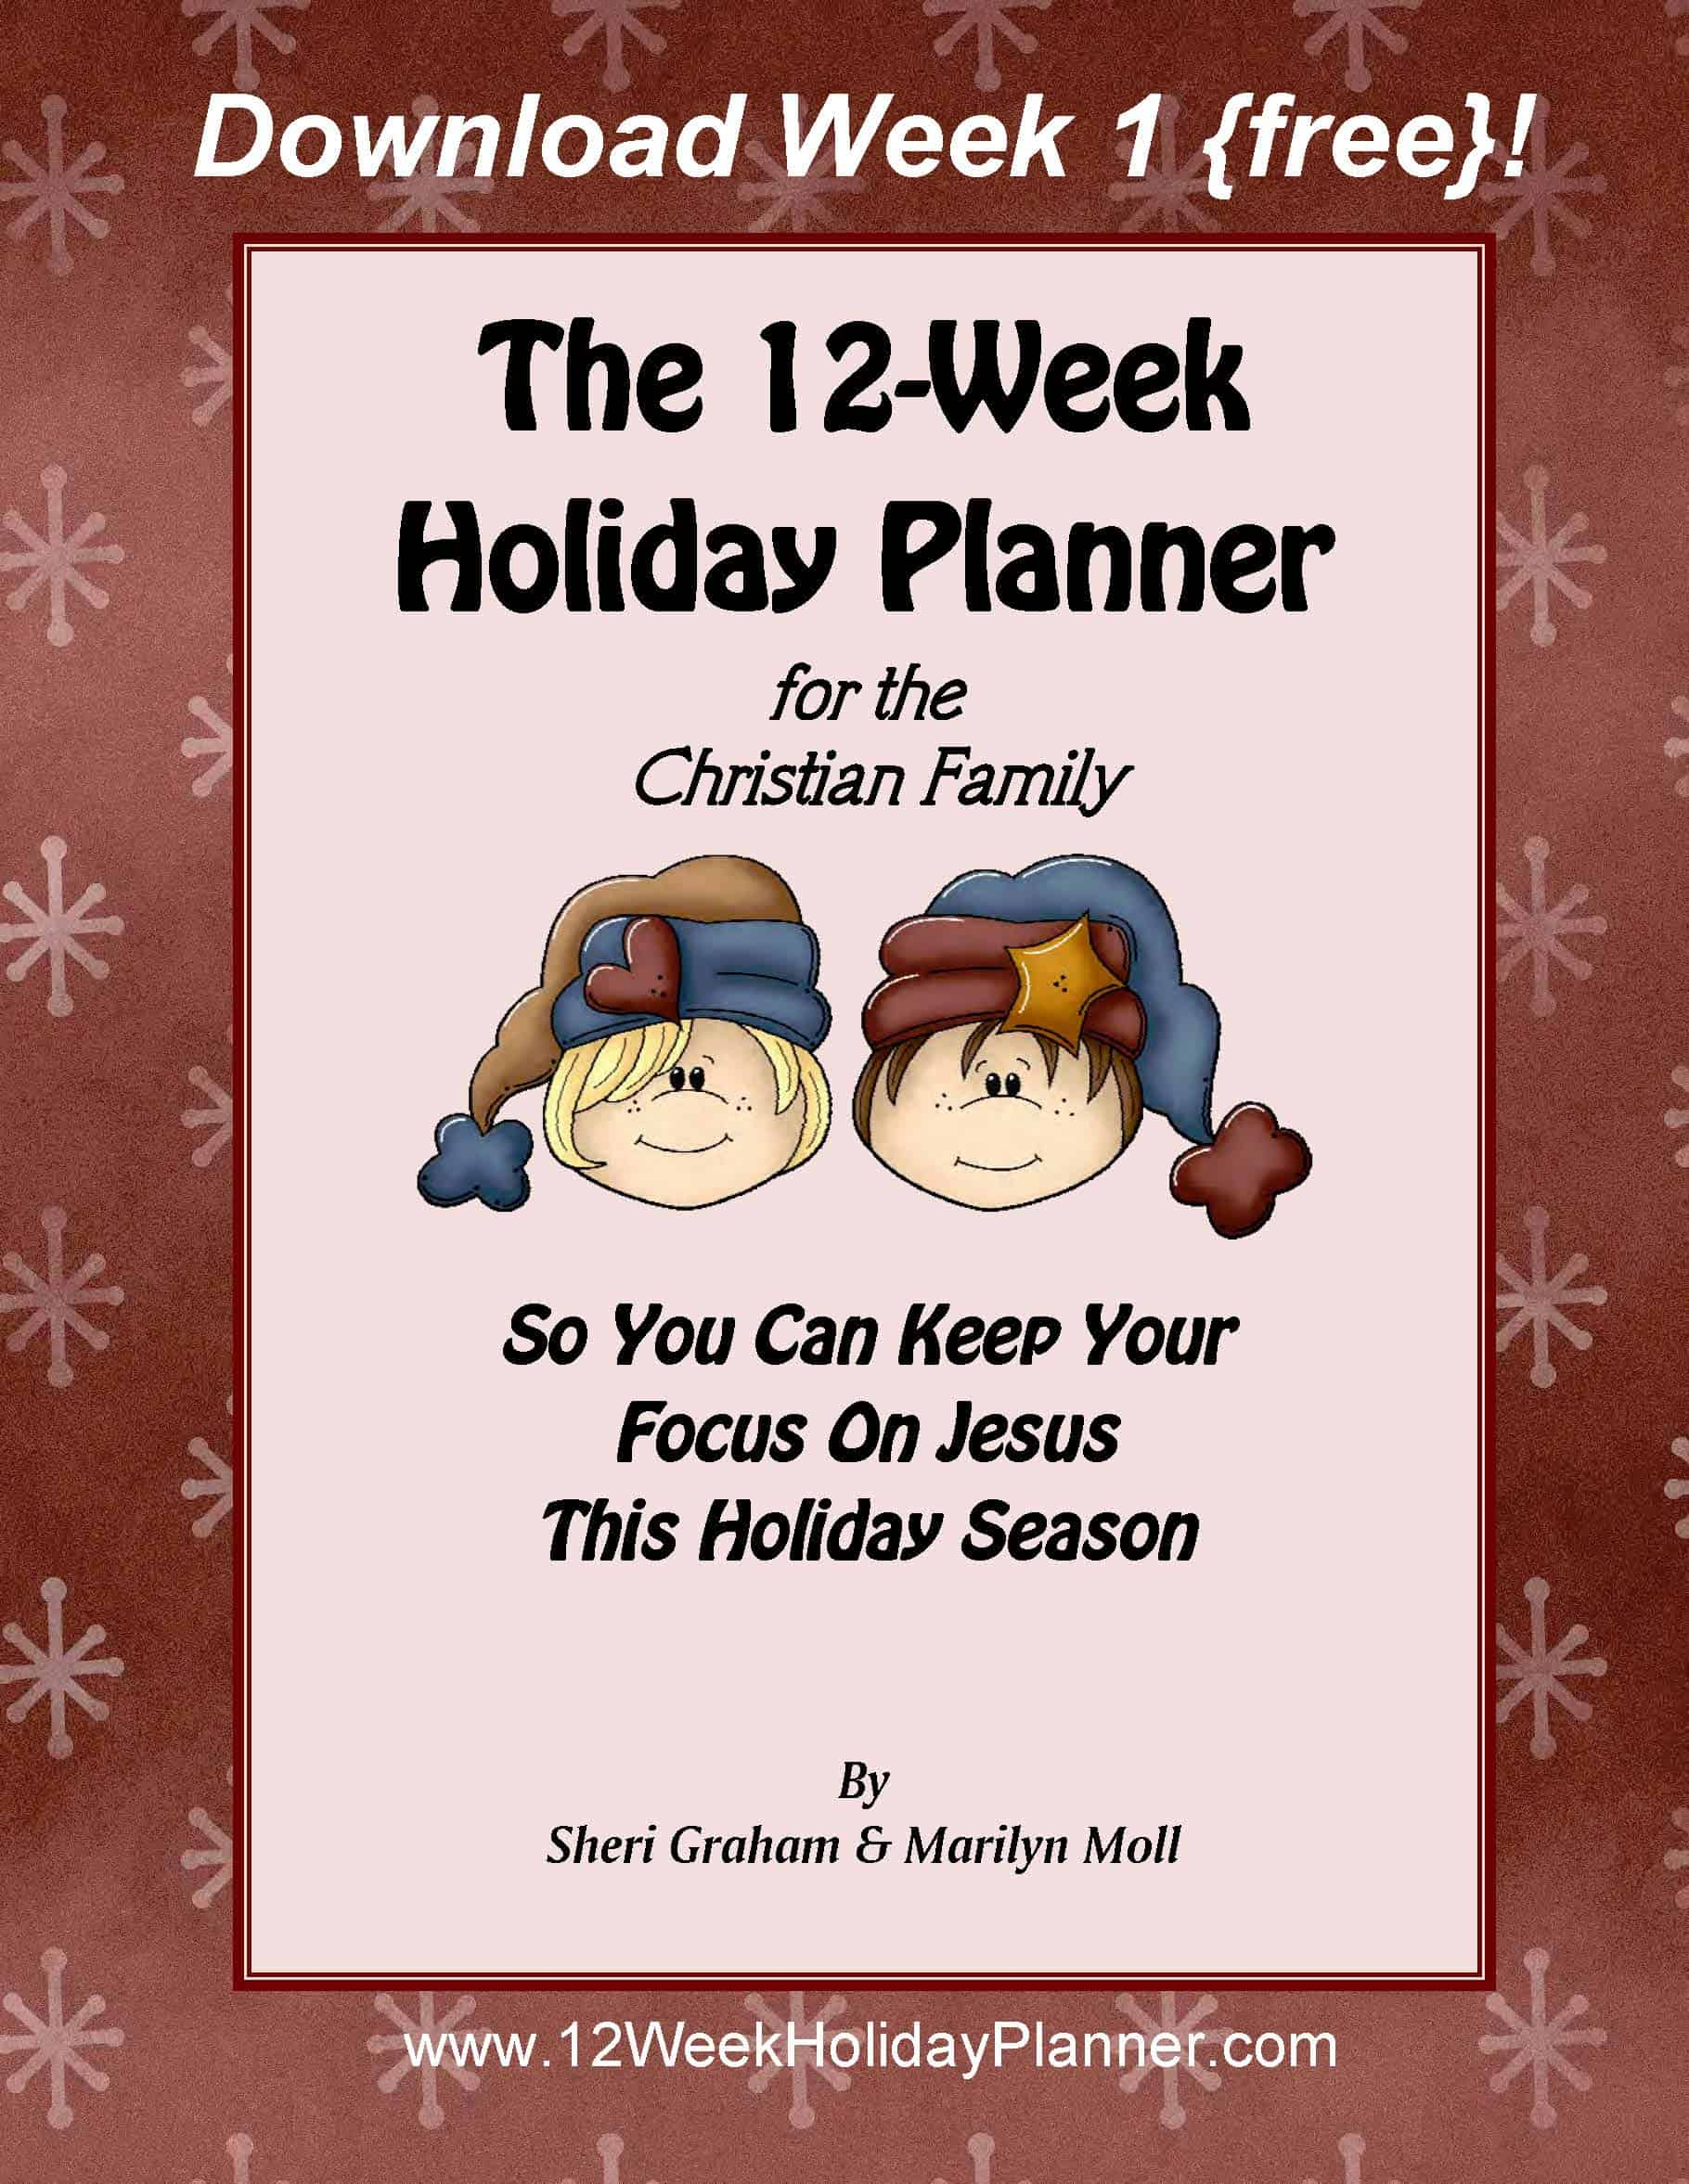 Planning for the holidays {and a free Week 1 excerpt from The Holiday Planner!}